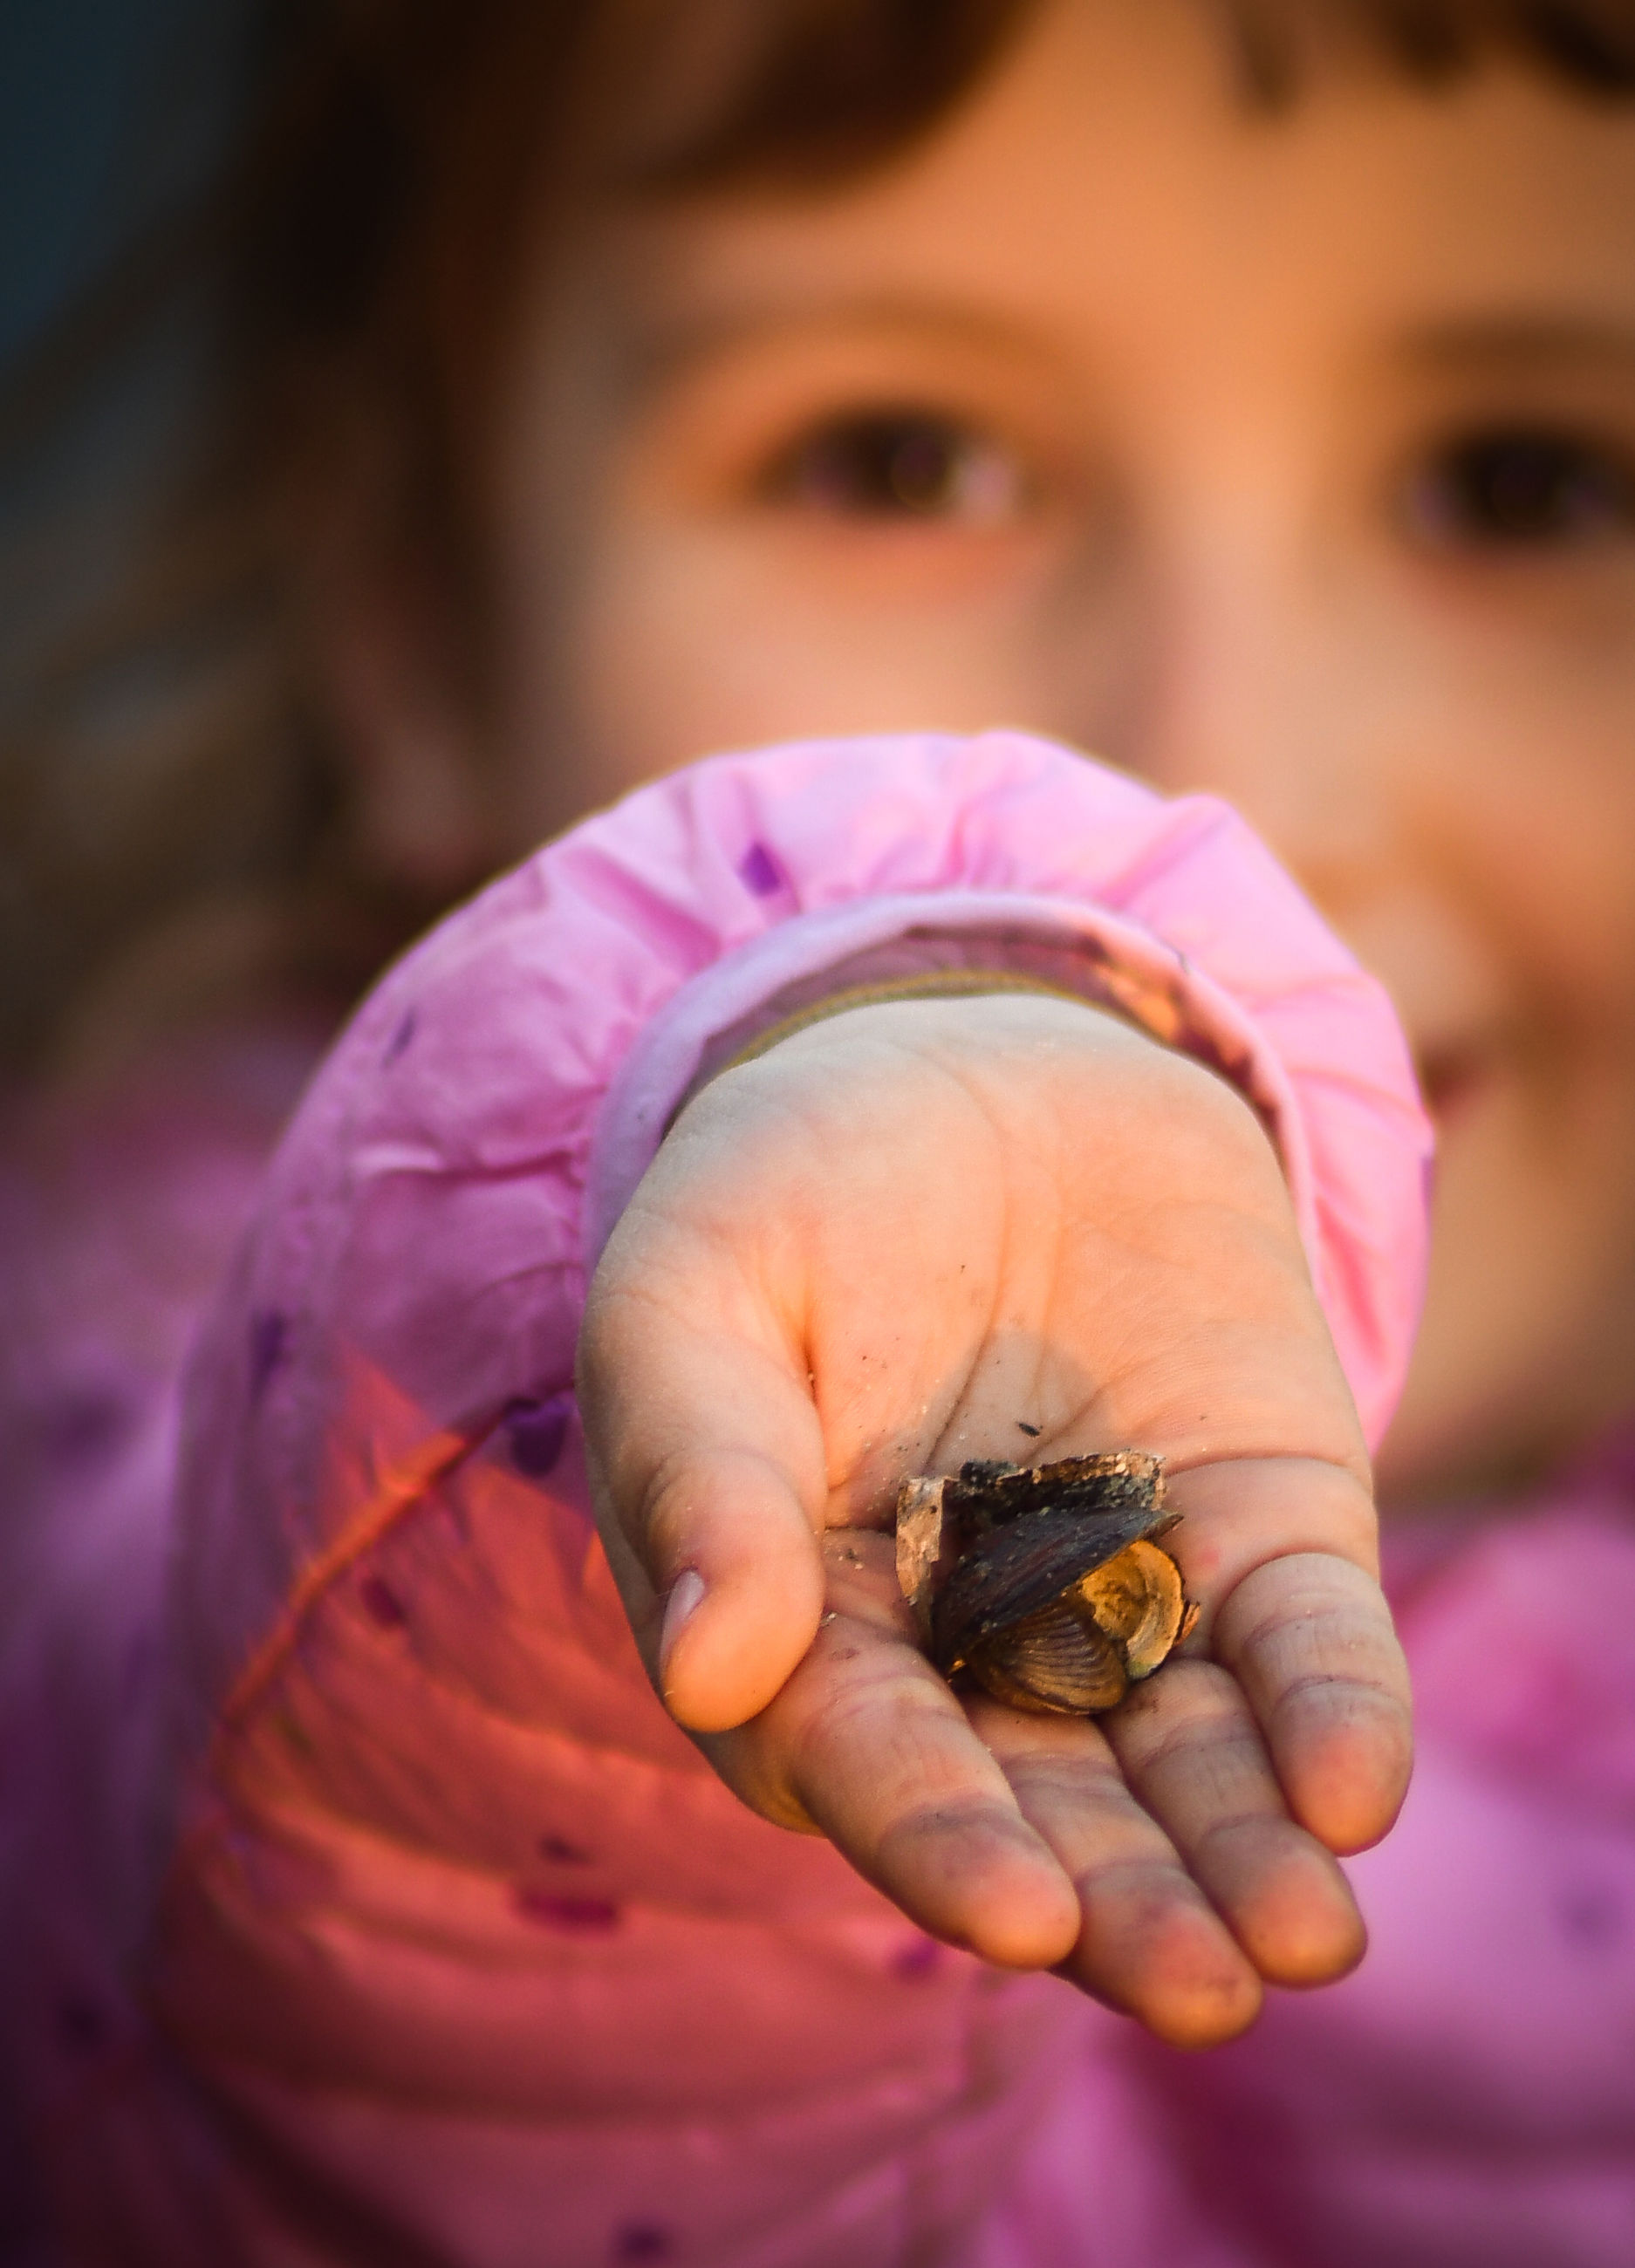 childhood, child, close-up, baby, one person, skin, hand, pink, holding, women, toddler, animal, female, portrait, person, human eye, animal themes, cute, human face, focus on foreground, animal wildlife, lap dog, one animal, food, nature, innocence, selective focus, food and drink, flower, outdoors